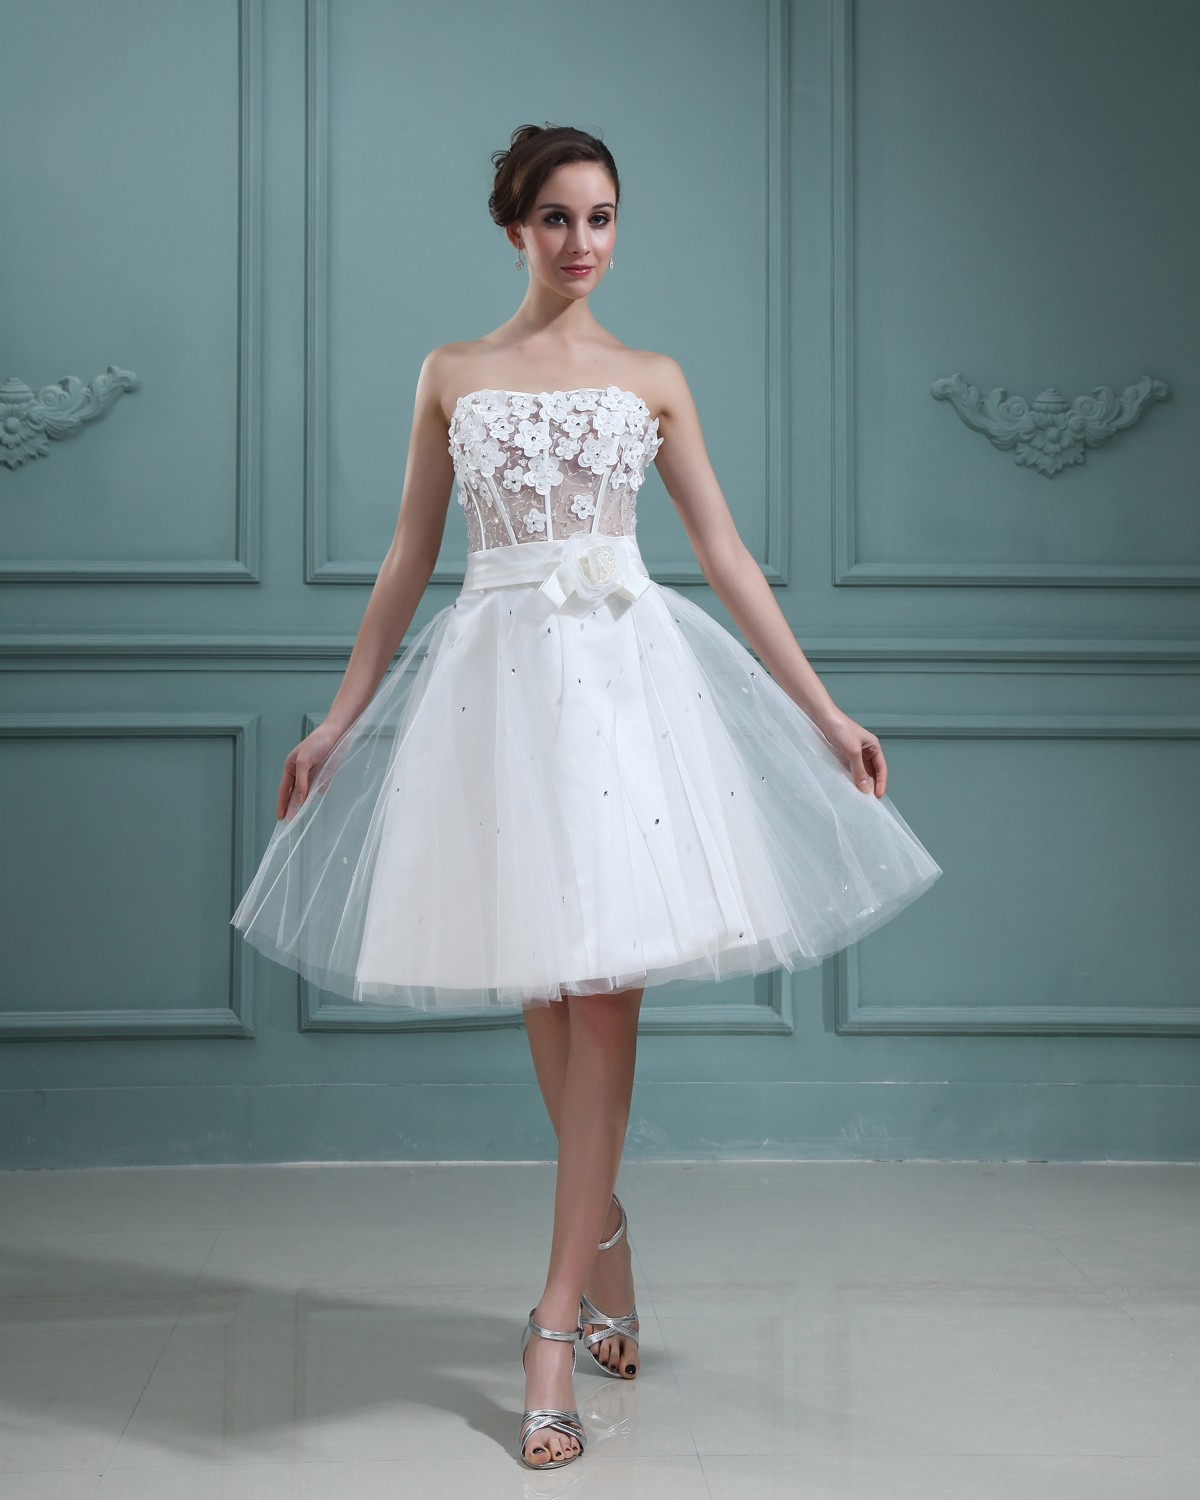 BarbraNewton\'s blog: would you rock a short wedding dress??